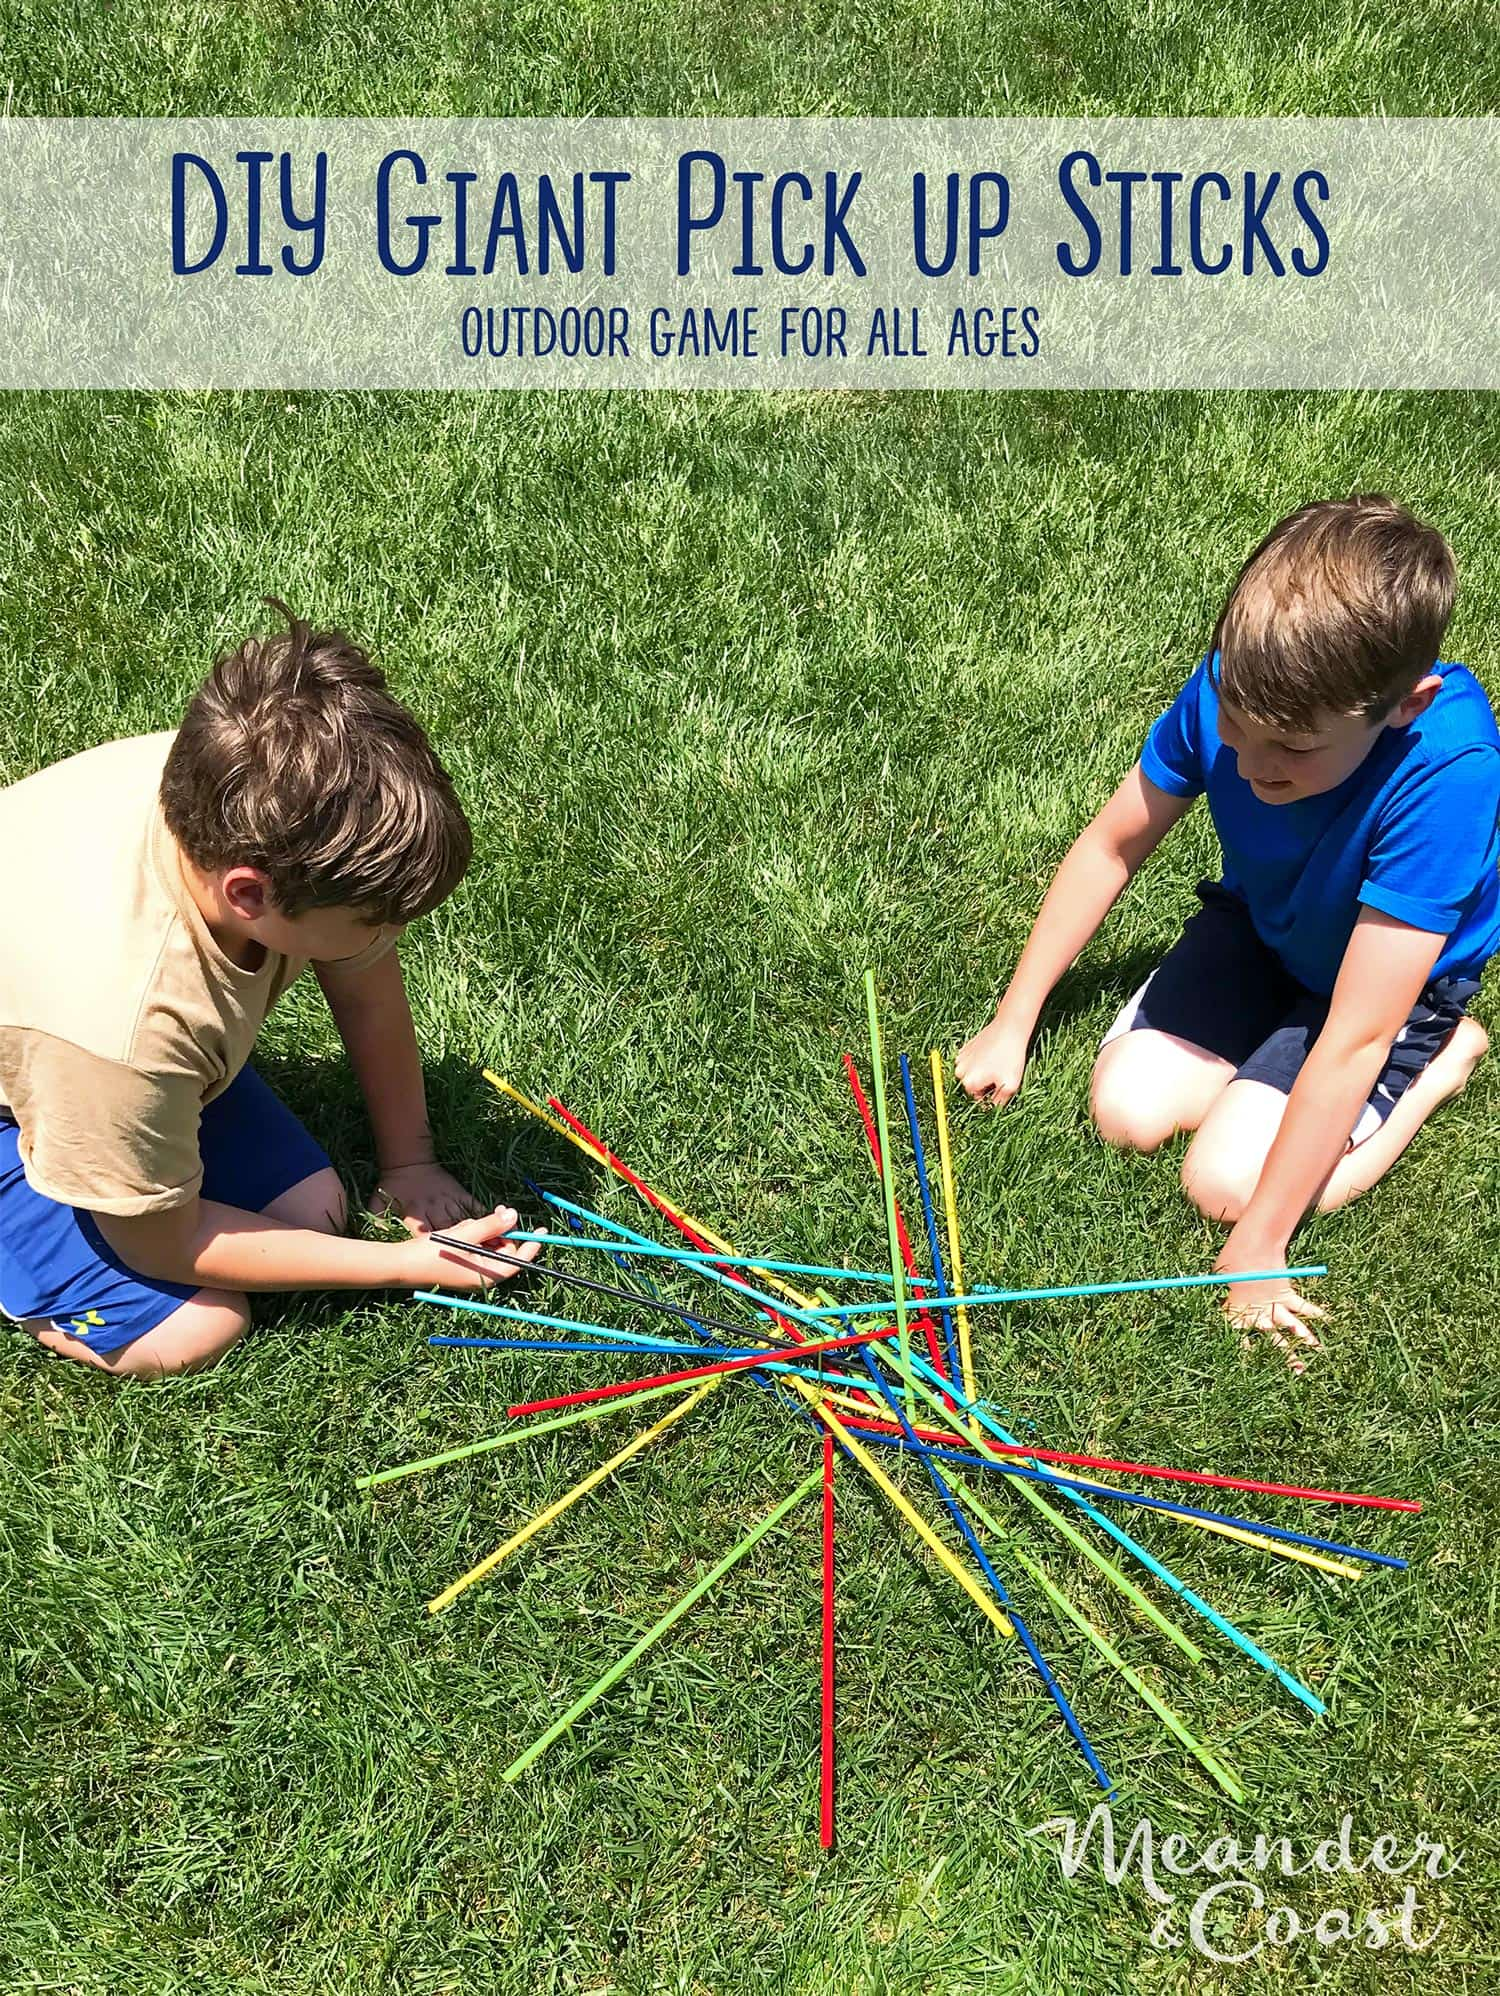 These would be perfect to take camping this summer! Make a giant outdoor game of pick up sticks. Quick and easy craft. | Meander & Coast #giantgame #pickupsticks #oversizedgame #giantyardgames #bigyardgame #campinggames